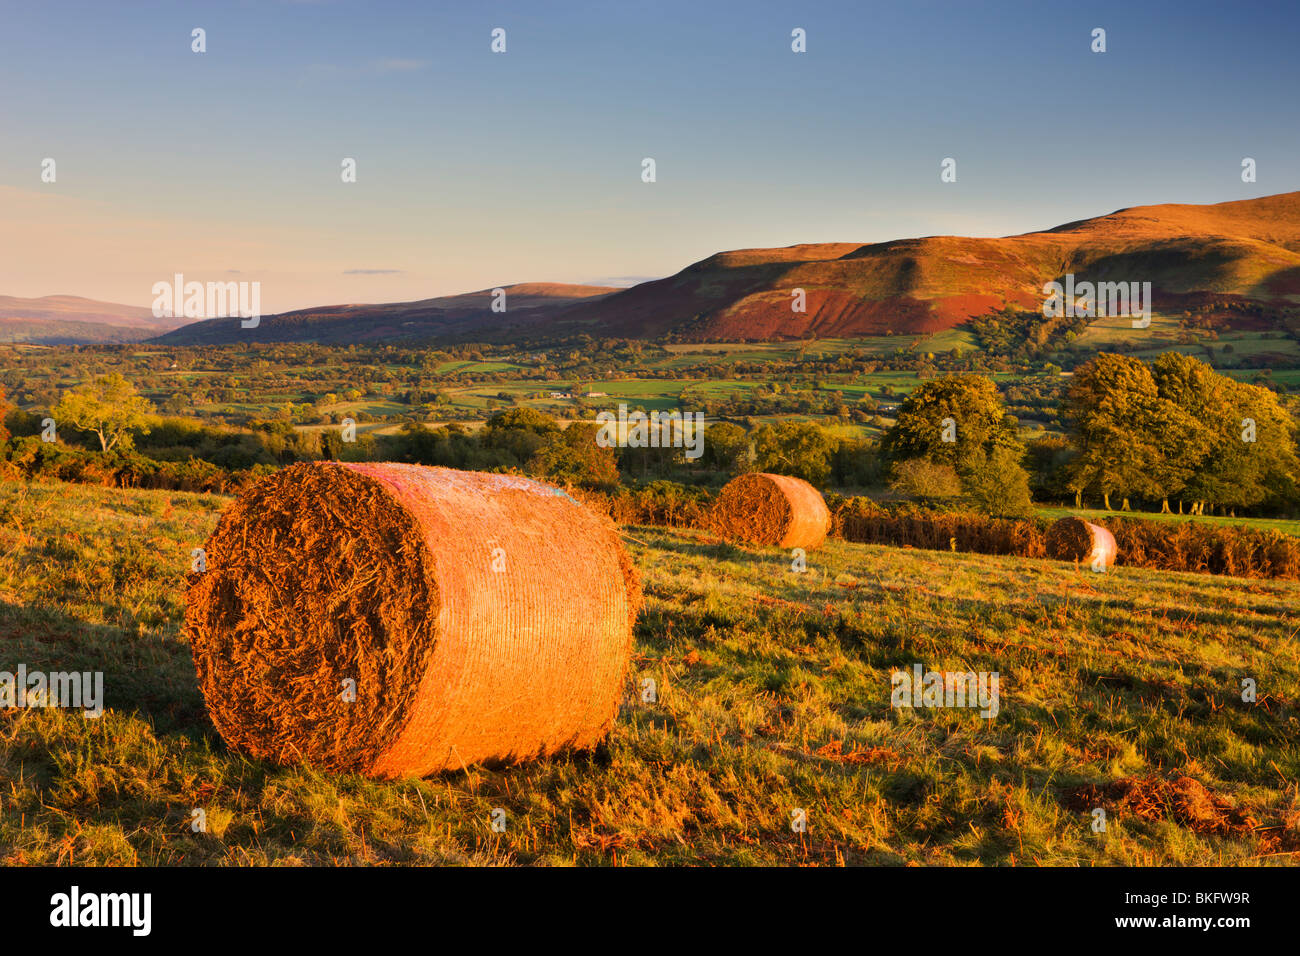 Bracken bales on Mynydd Illtud Common in the Brecon Beacons National Park, Powys, Wales, UK. Autumn (October) 2009 - Stock Image